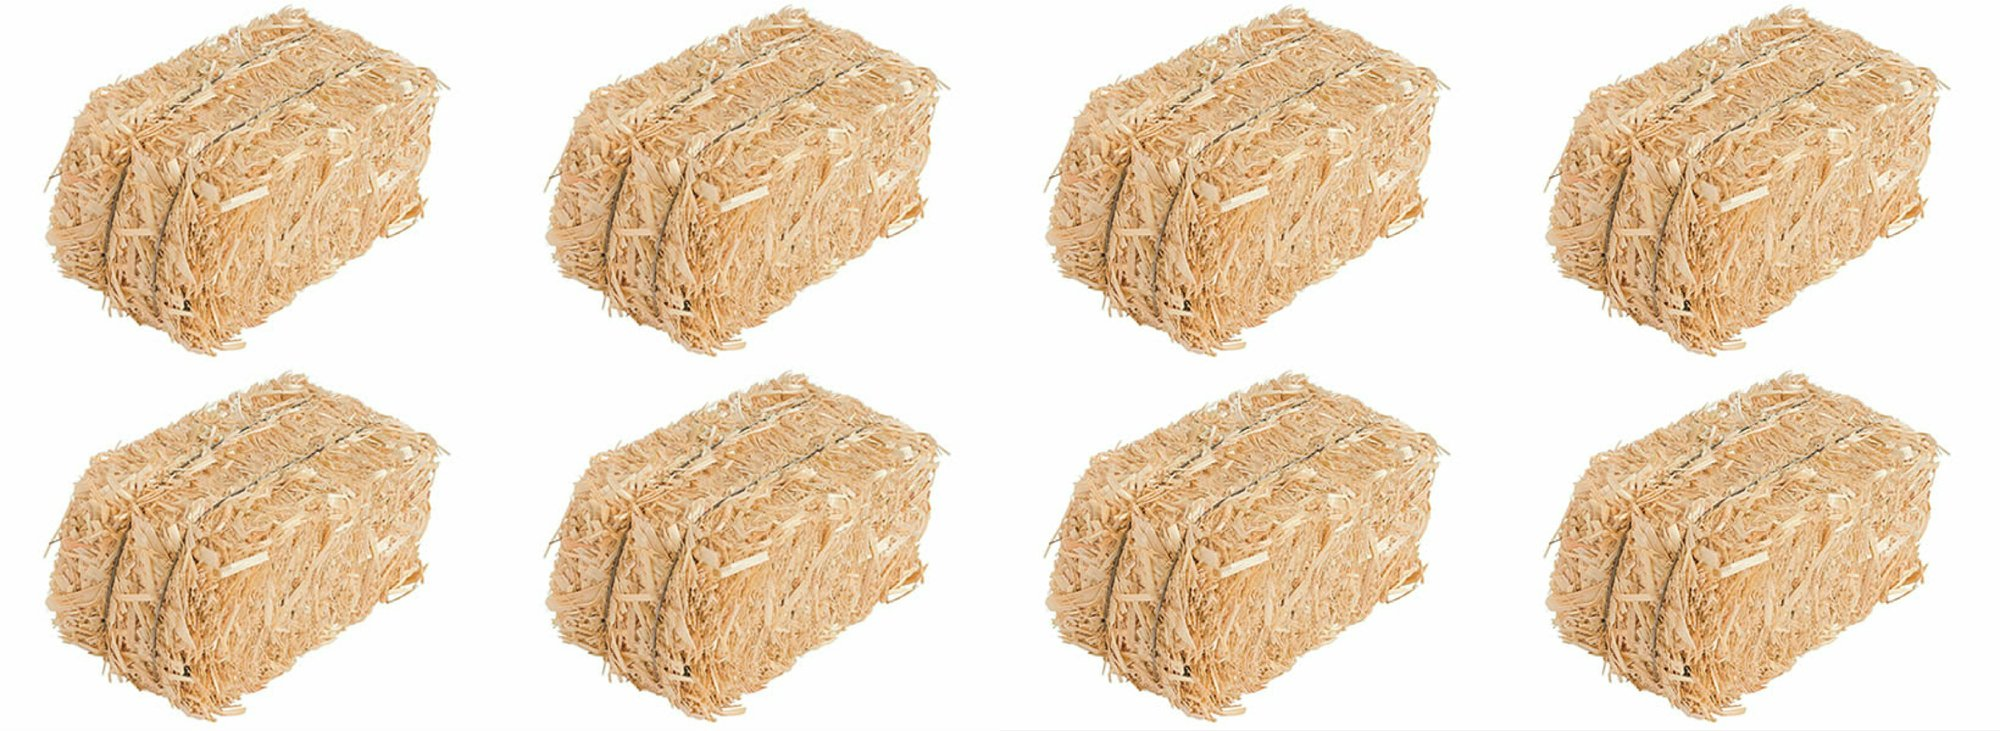 Straw Bale for Indoor or Outdoor Home Decor, 13 in, Set of 8